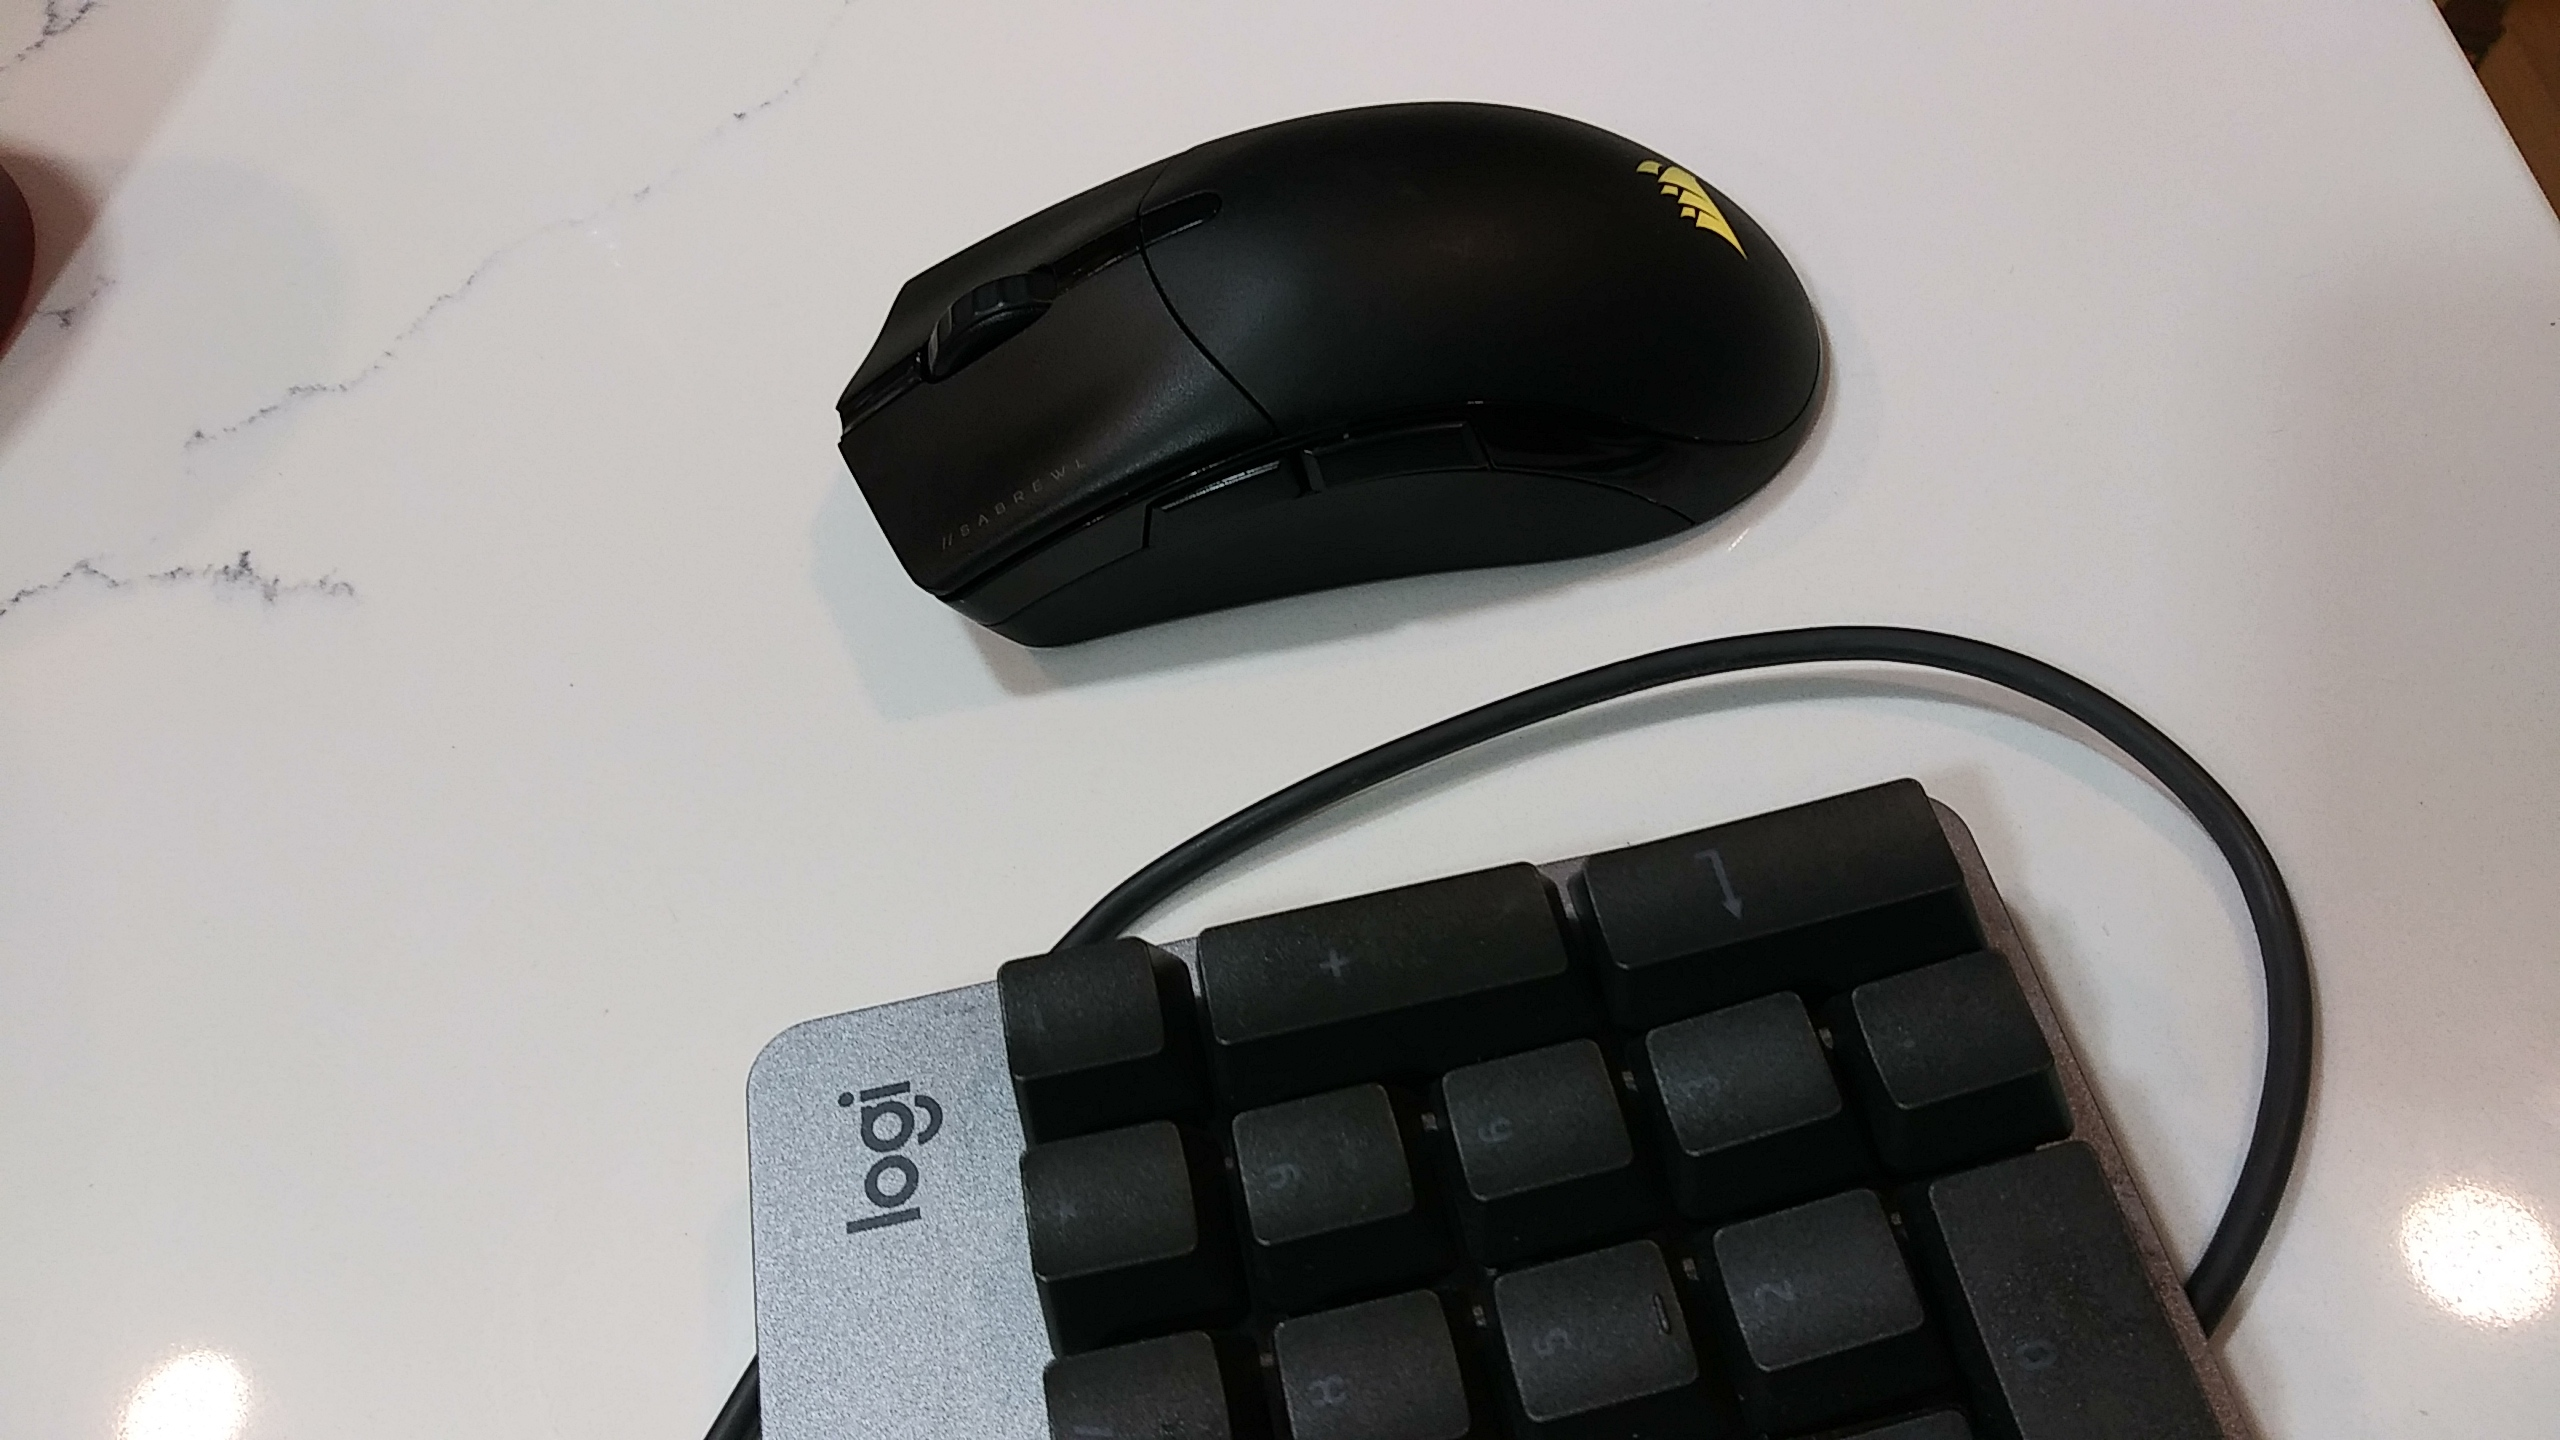 Corsair Sabre RGB Pro on a desk with a glass top next to a keyboard